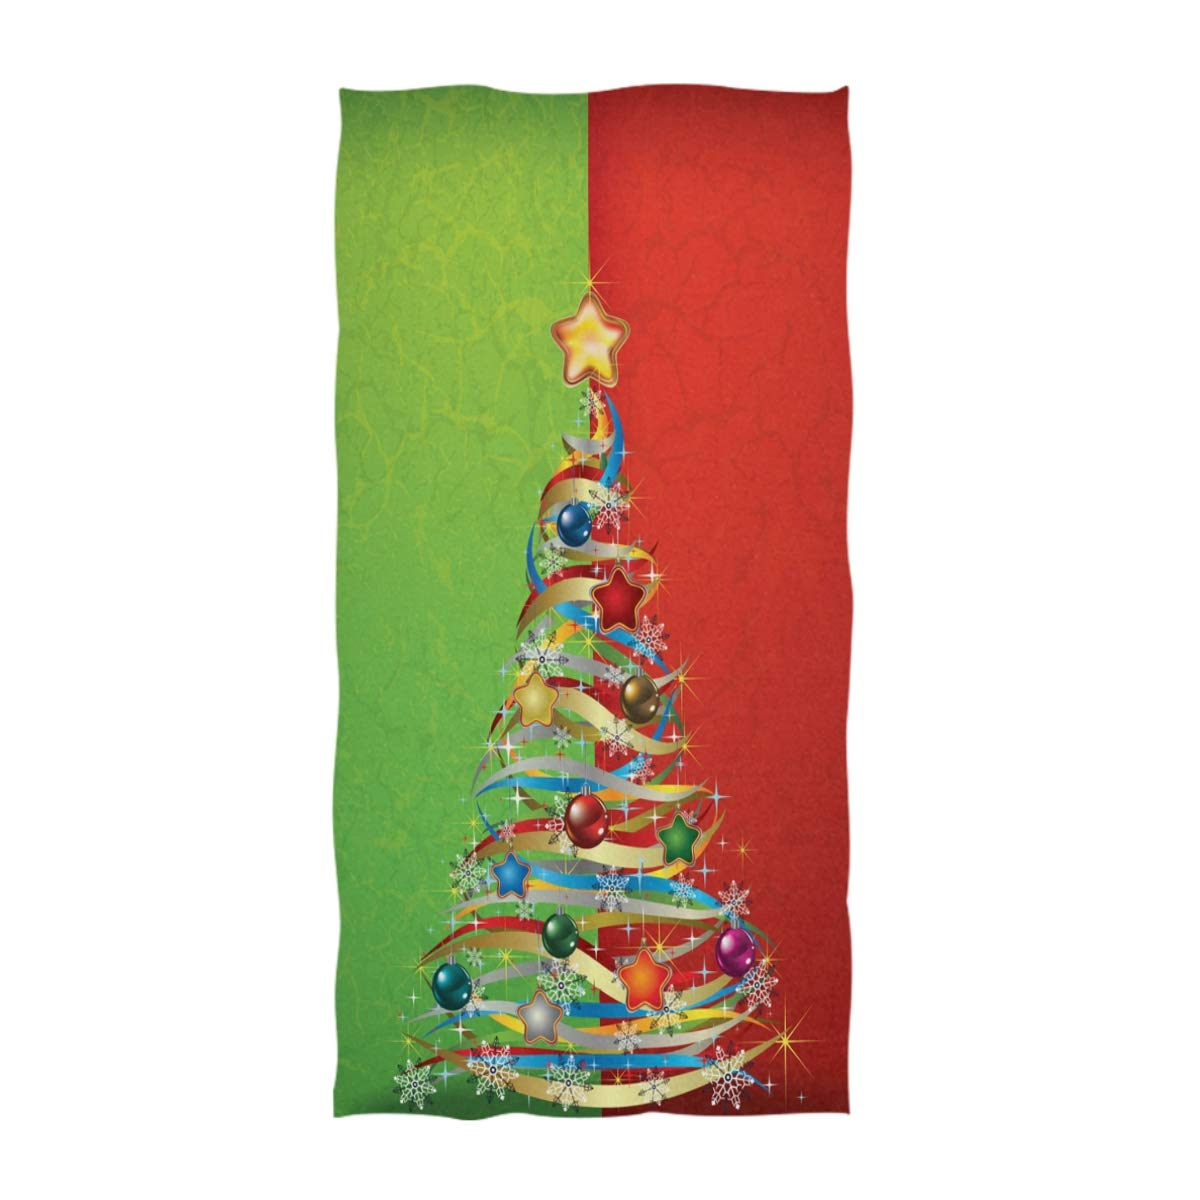 Naanle Stylish Abstract Green Red Christmas Tree Greeting Print Soft Bath Towel Large Guest Hand Towels Multipurpose for Bathroom Hotel Gym and Spa 16 x 30